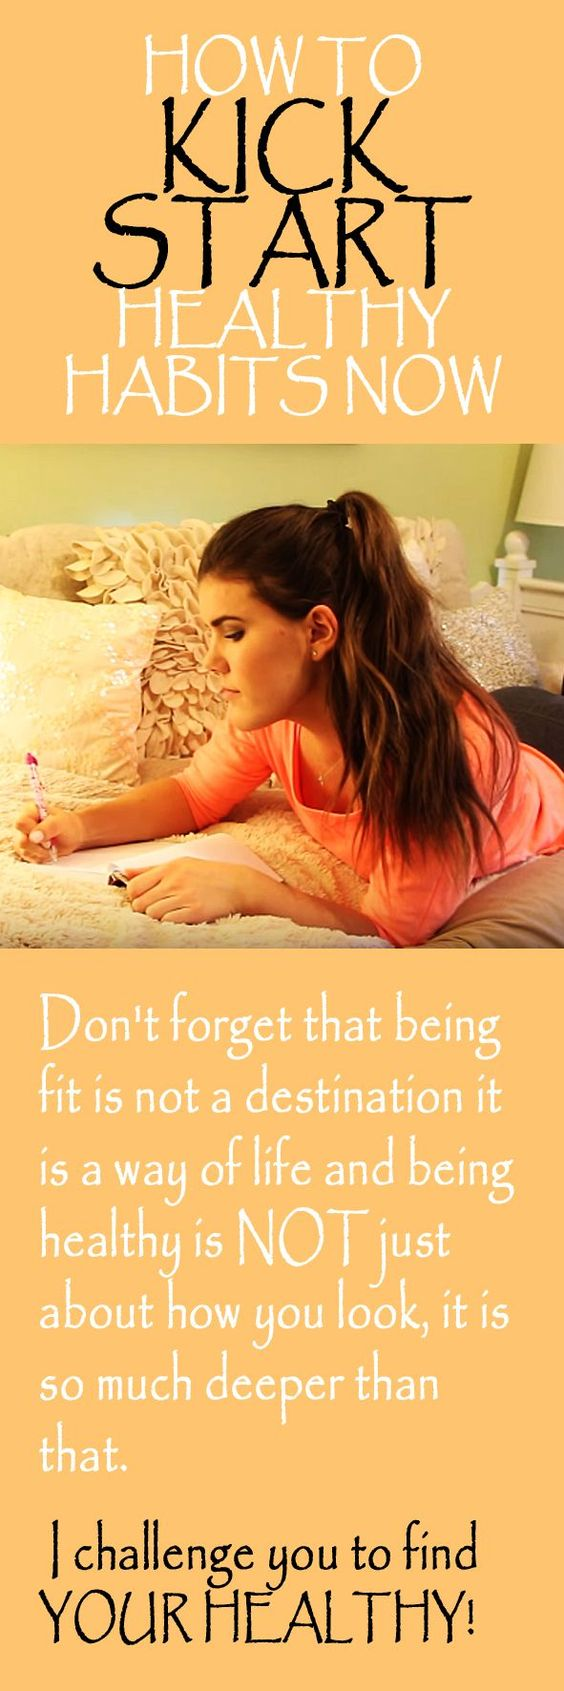 Best tips for starting a healthy lifestyle you can implement today. No excuses!